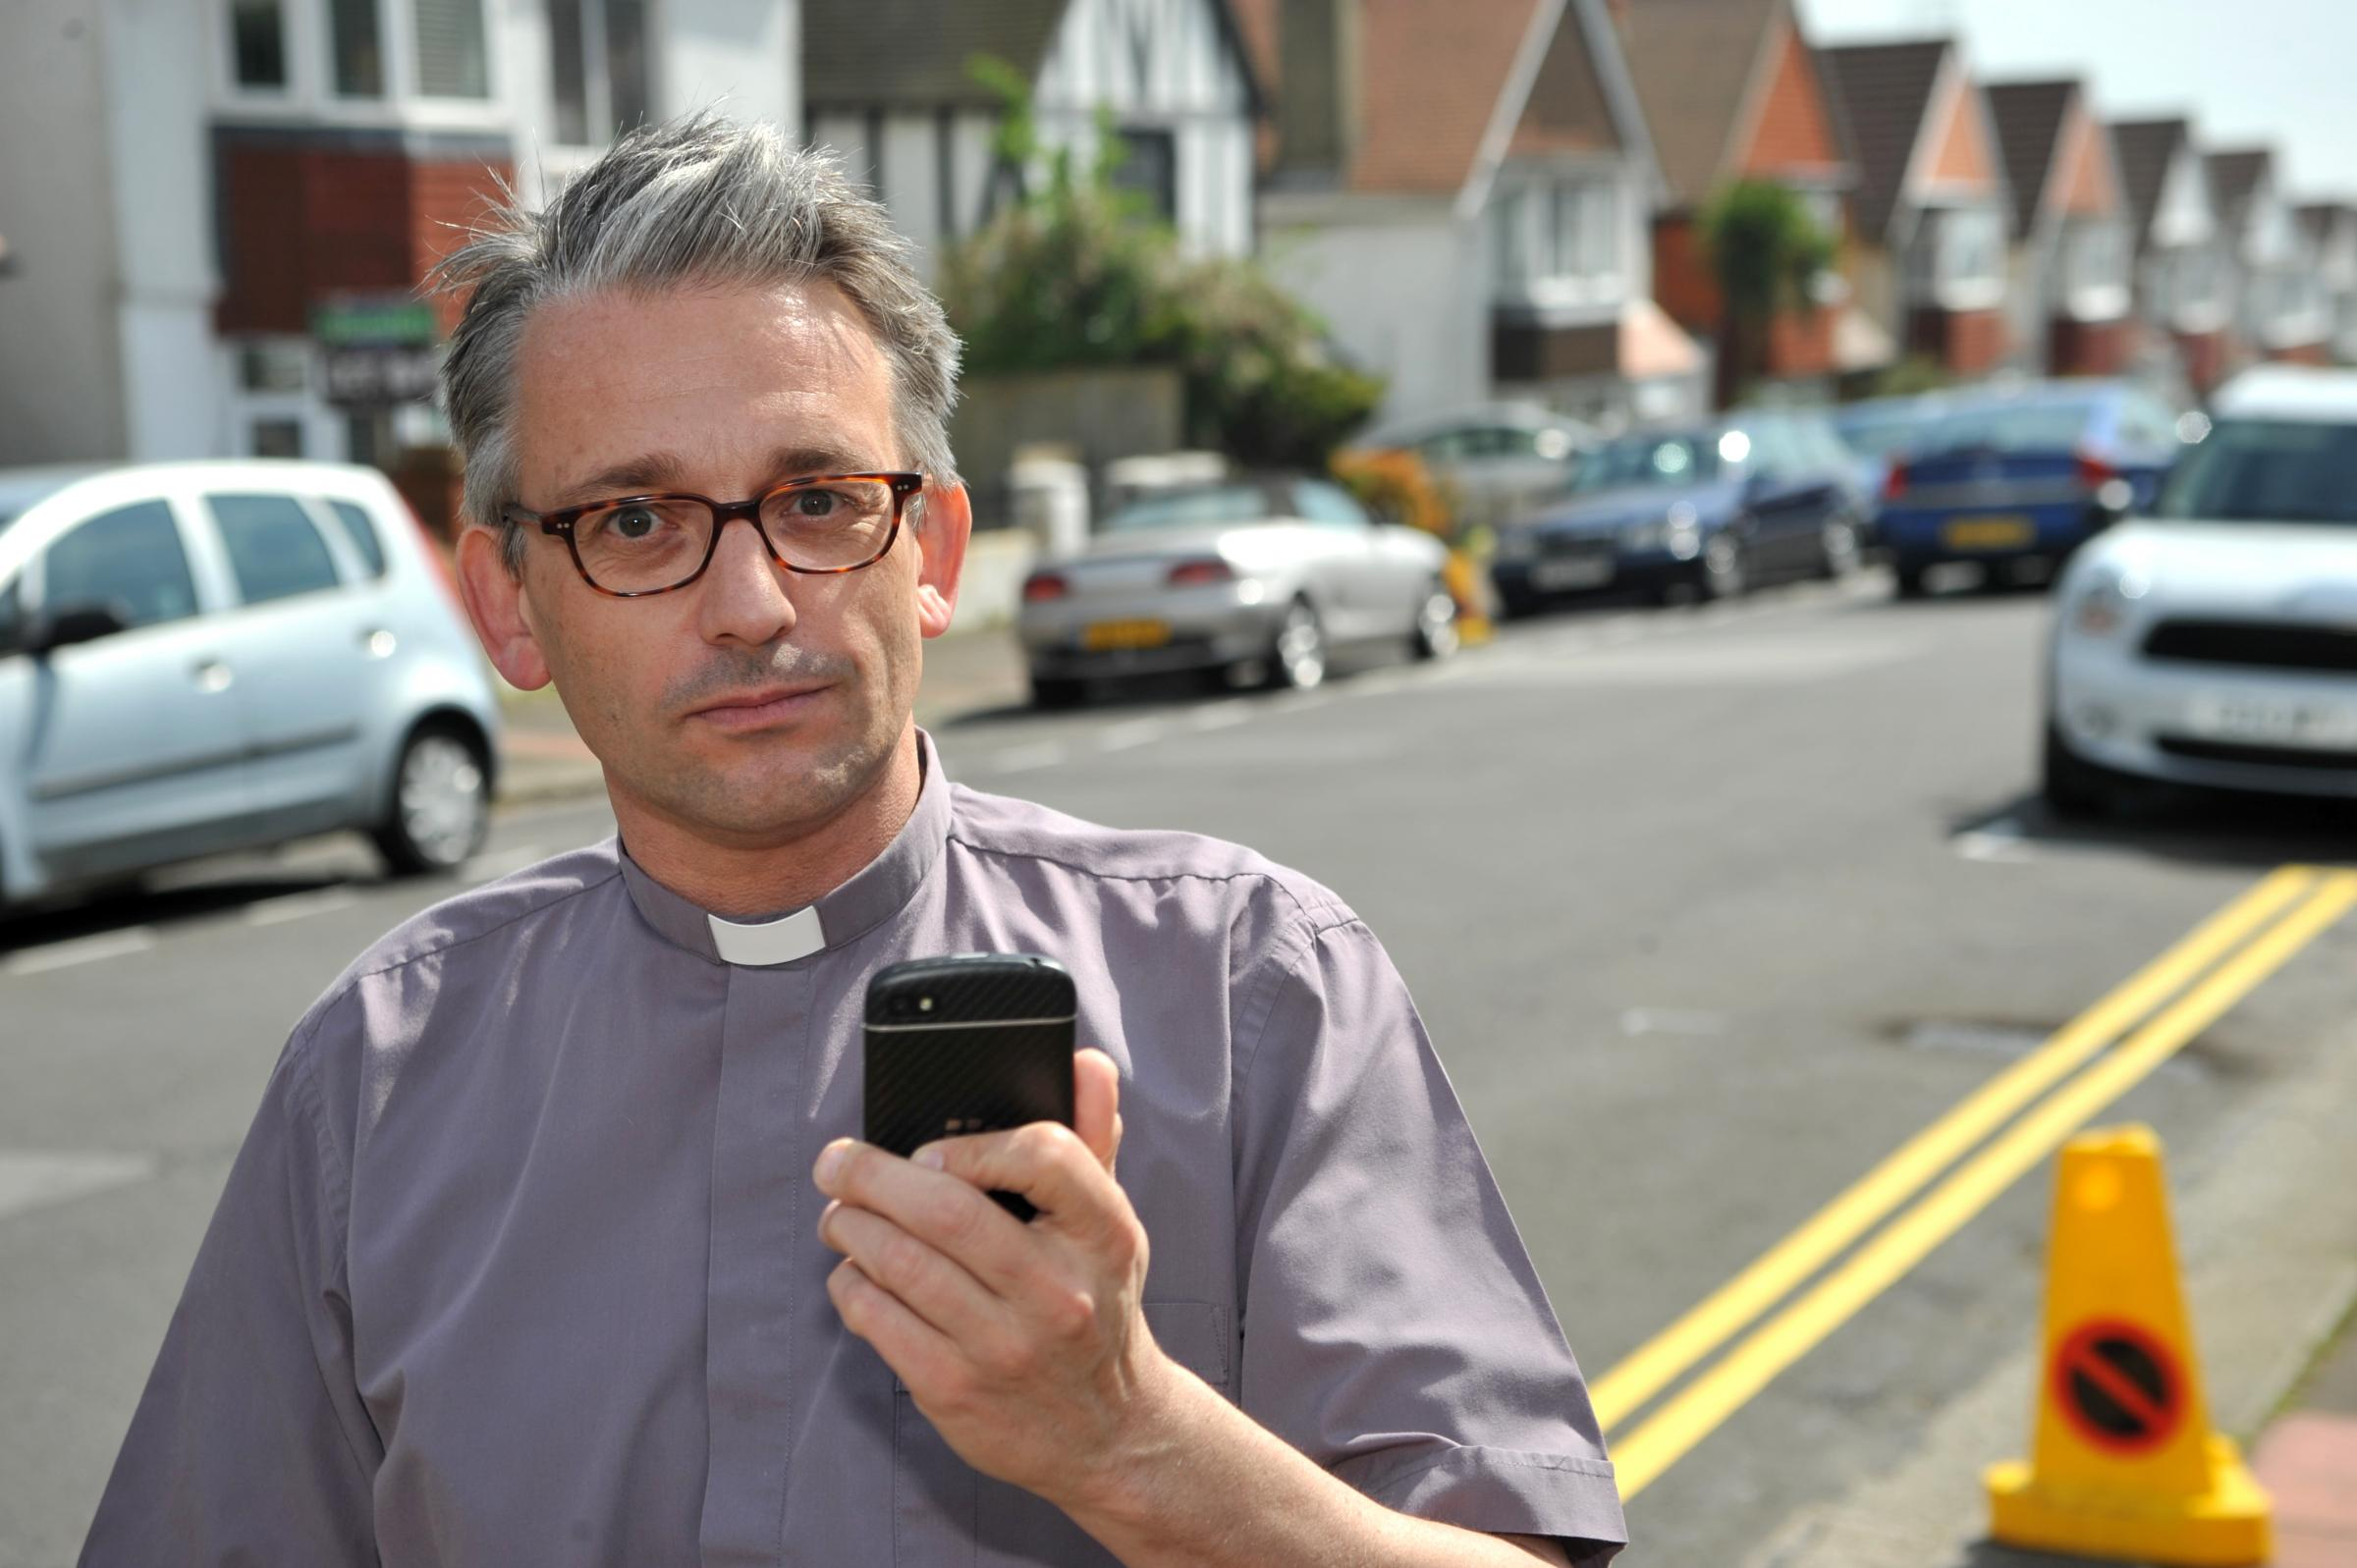 Vicar refuses to tow the line in parking row